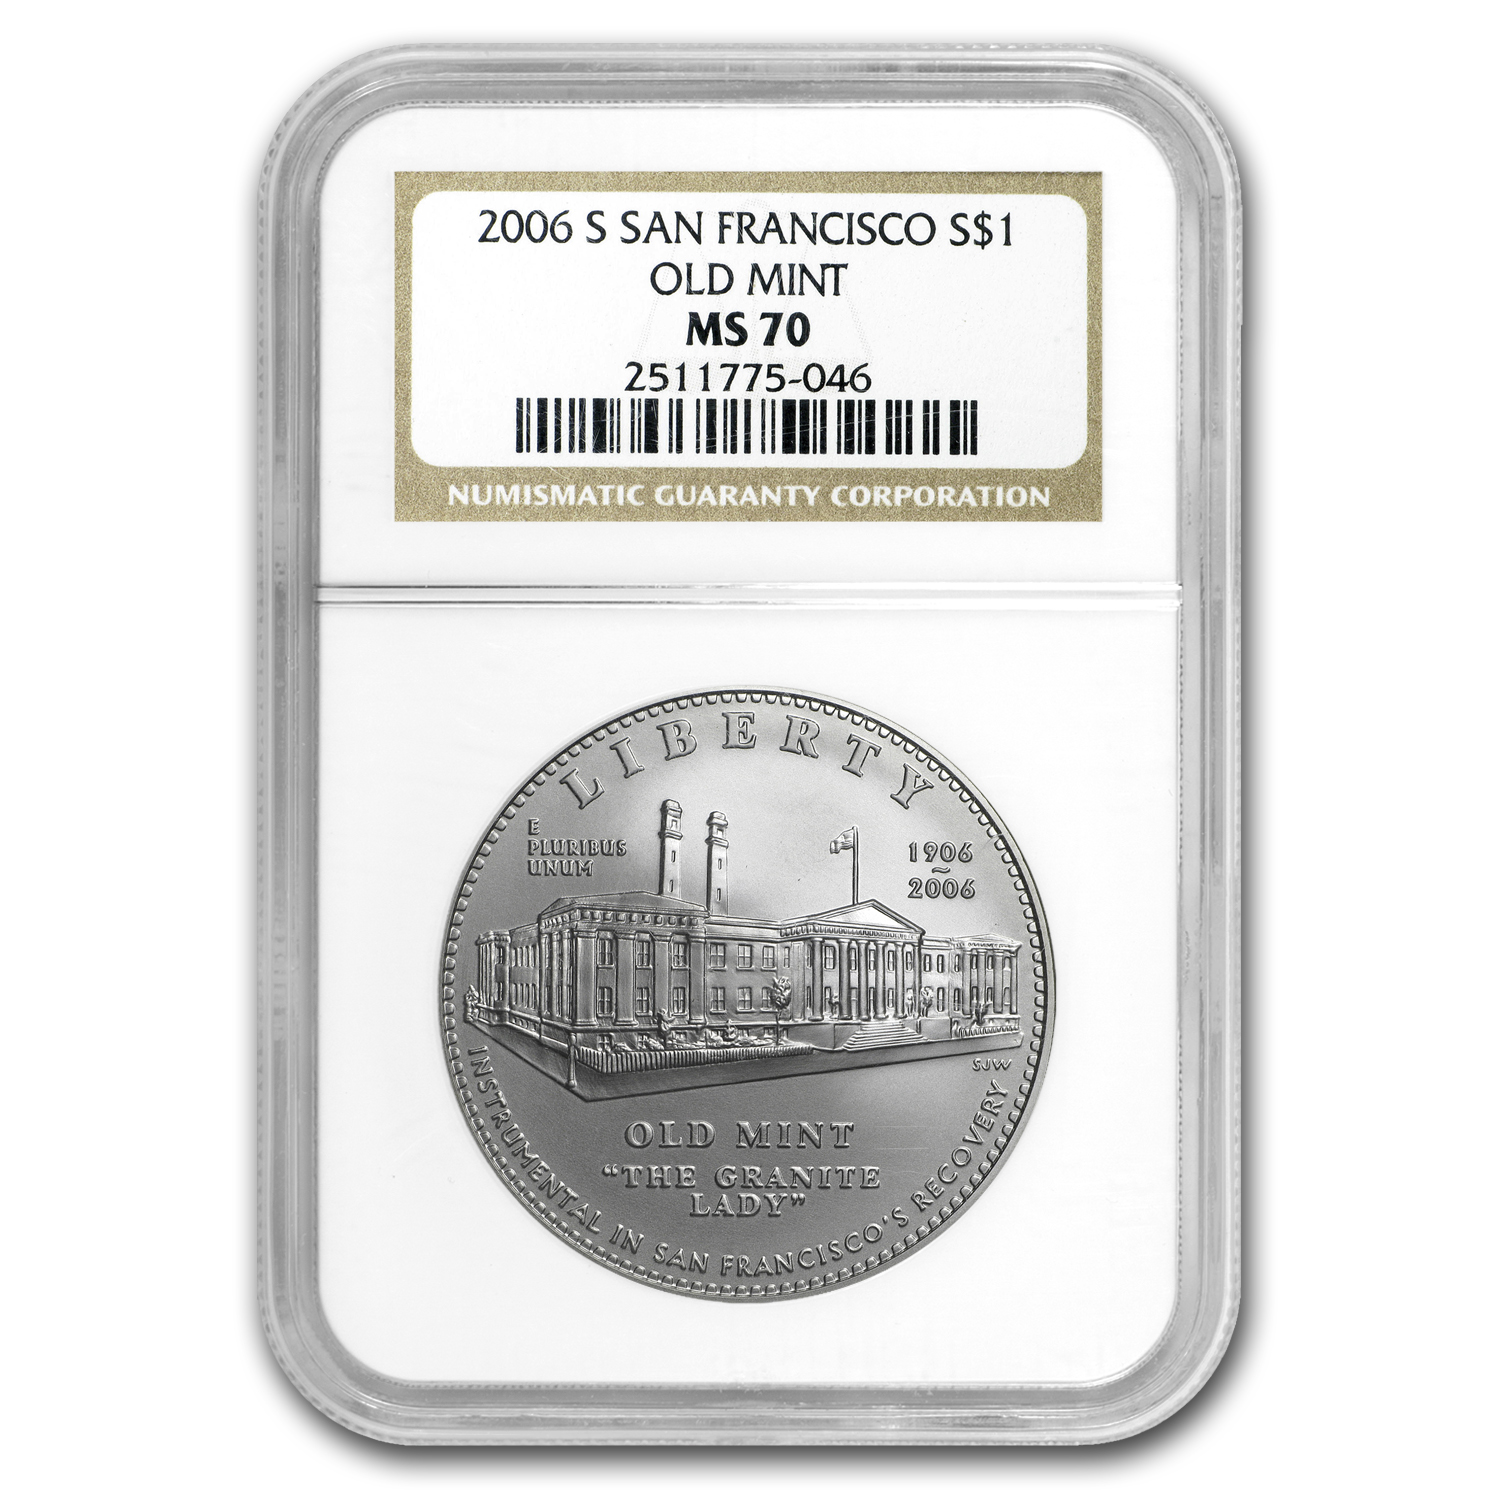 2006-S San Francisco Old Mint $1 Silver Commemorative MS-70 NGC